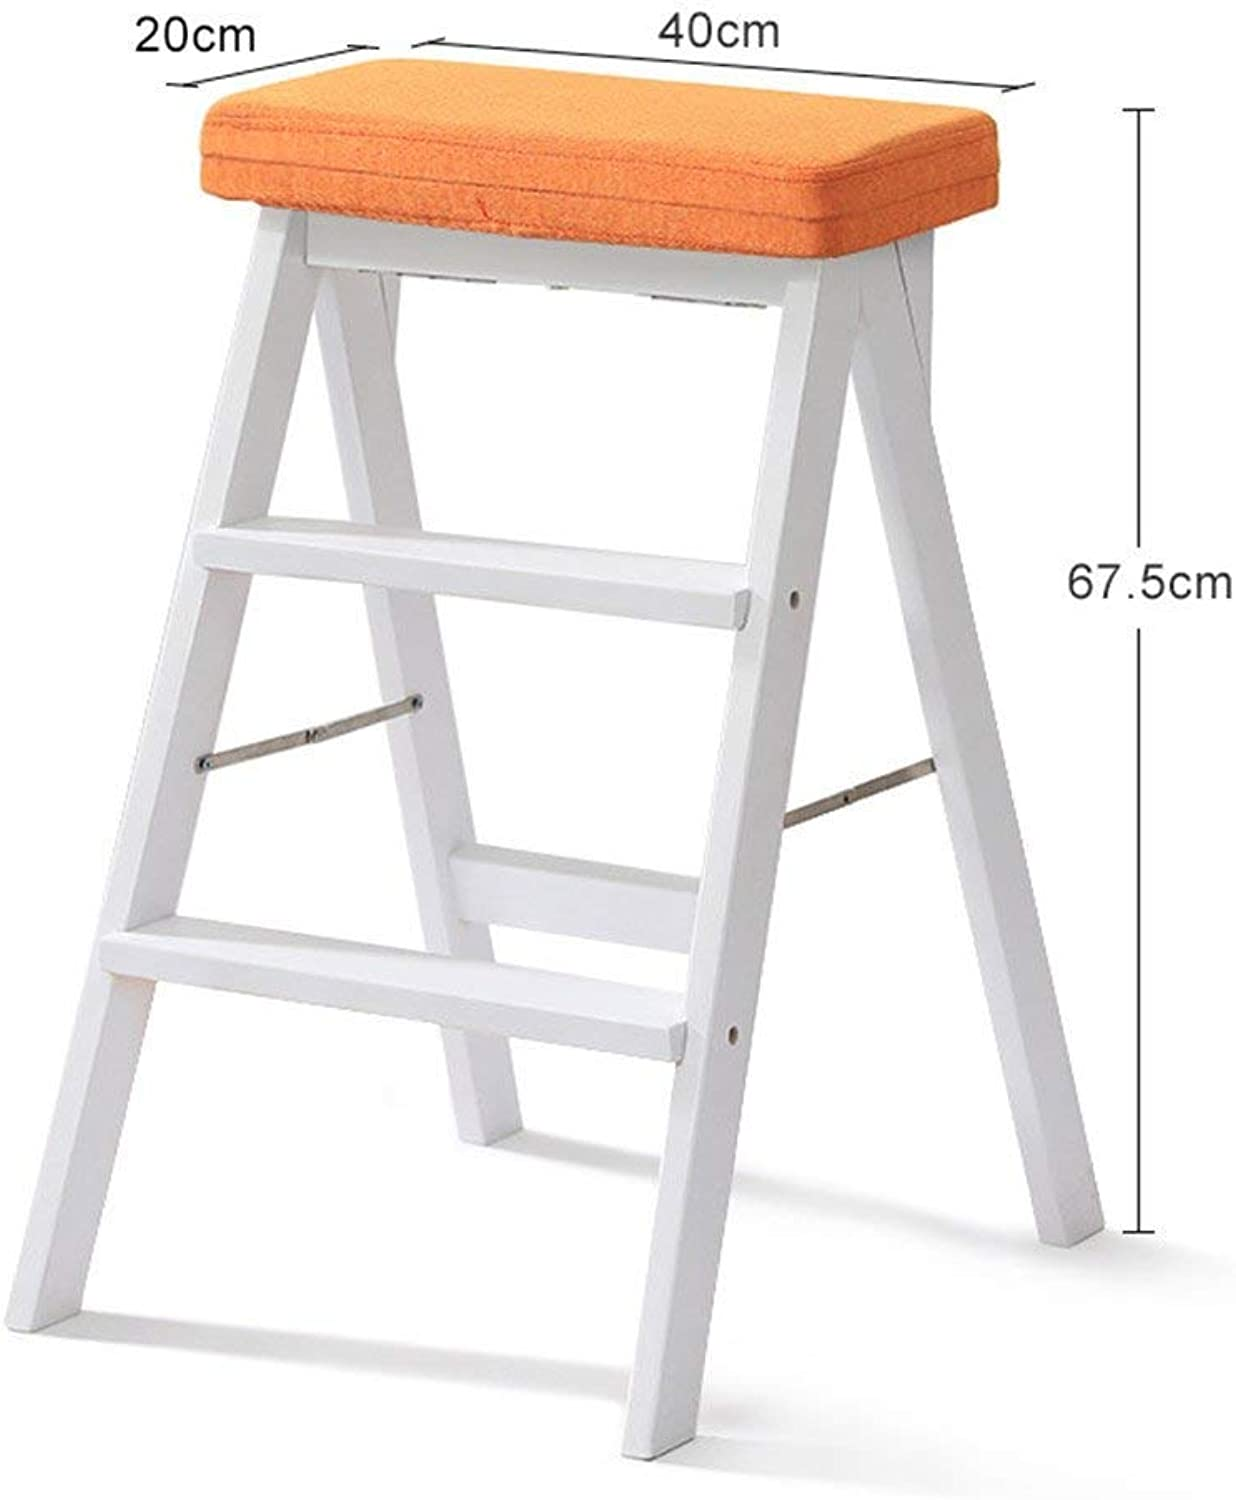 HOME Simple White Folding Stool   3 Step Stool Portable Mobile Chair Multi-Function Kitchen high Stool and Table Step on Both Sides with Washable seat Cover